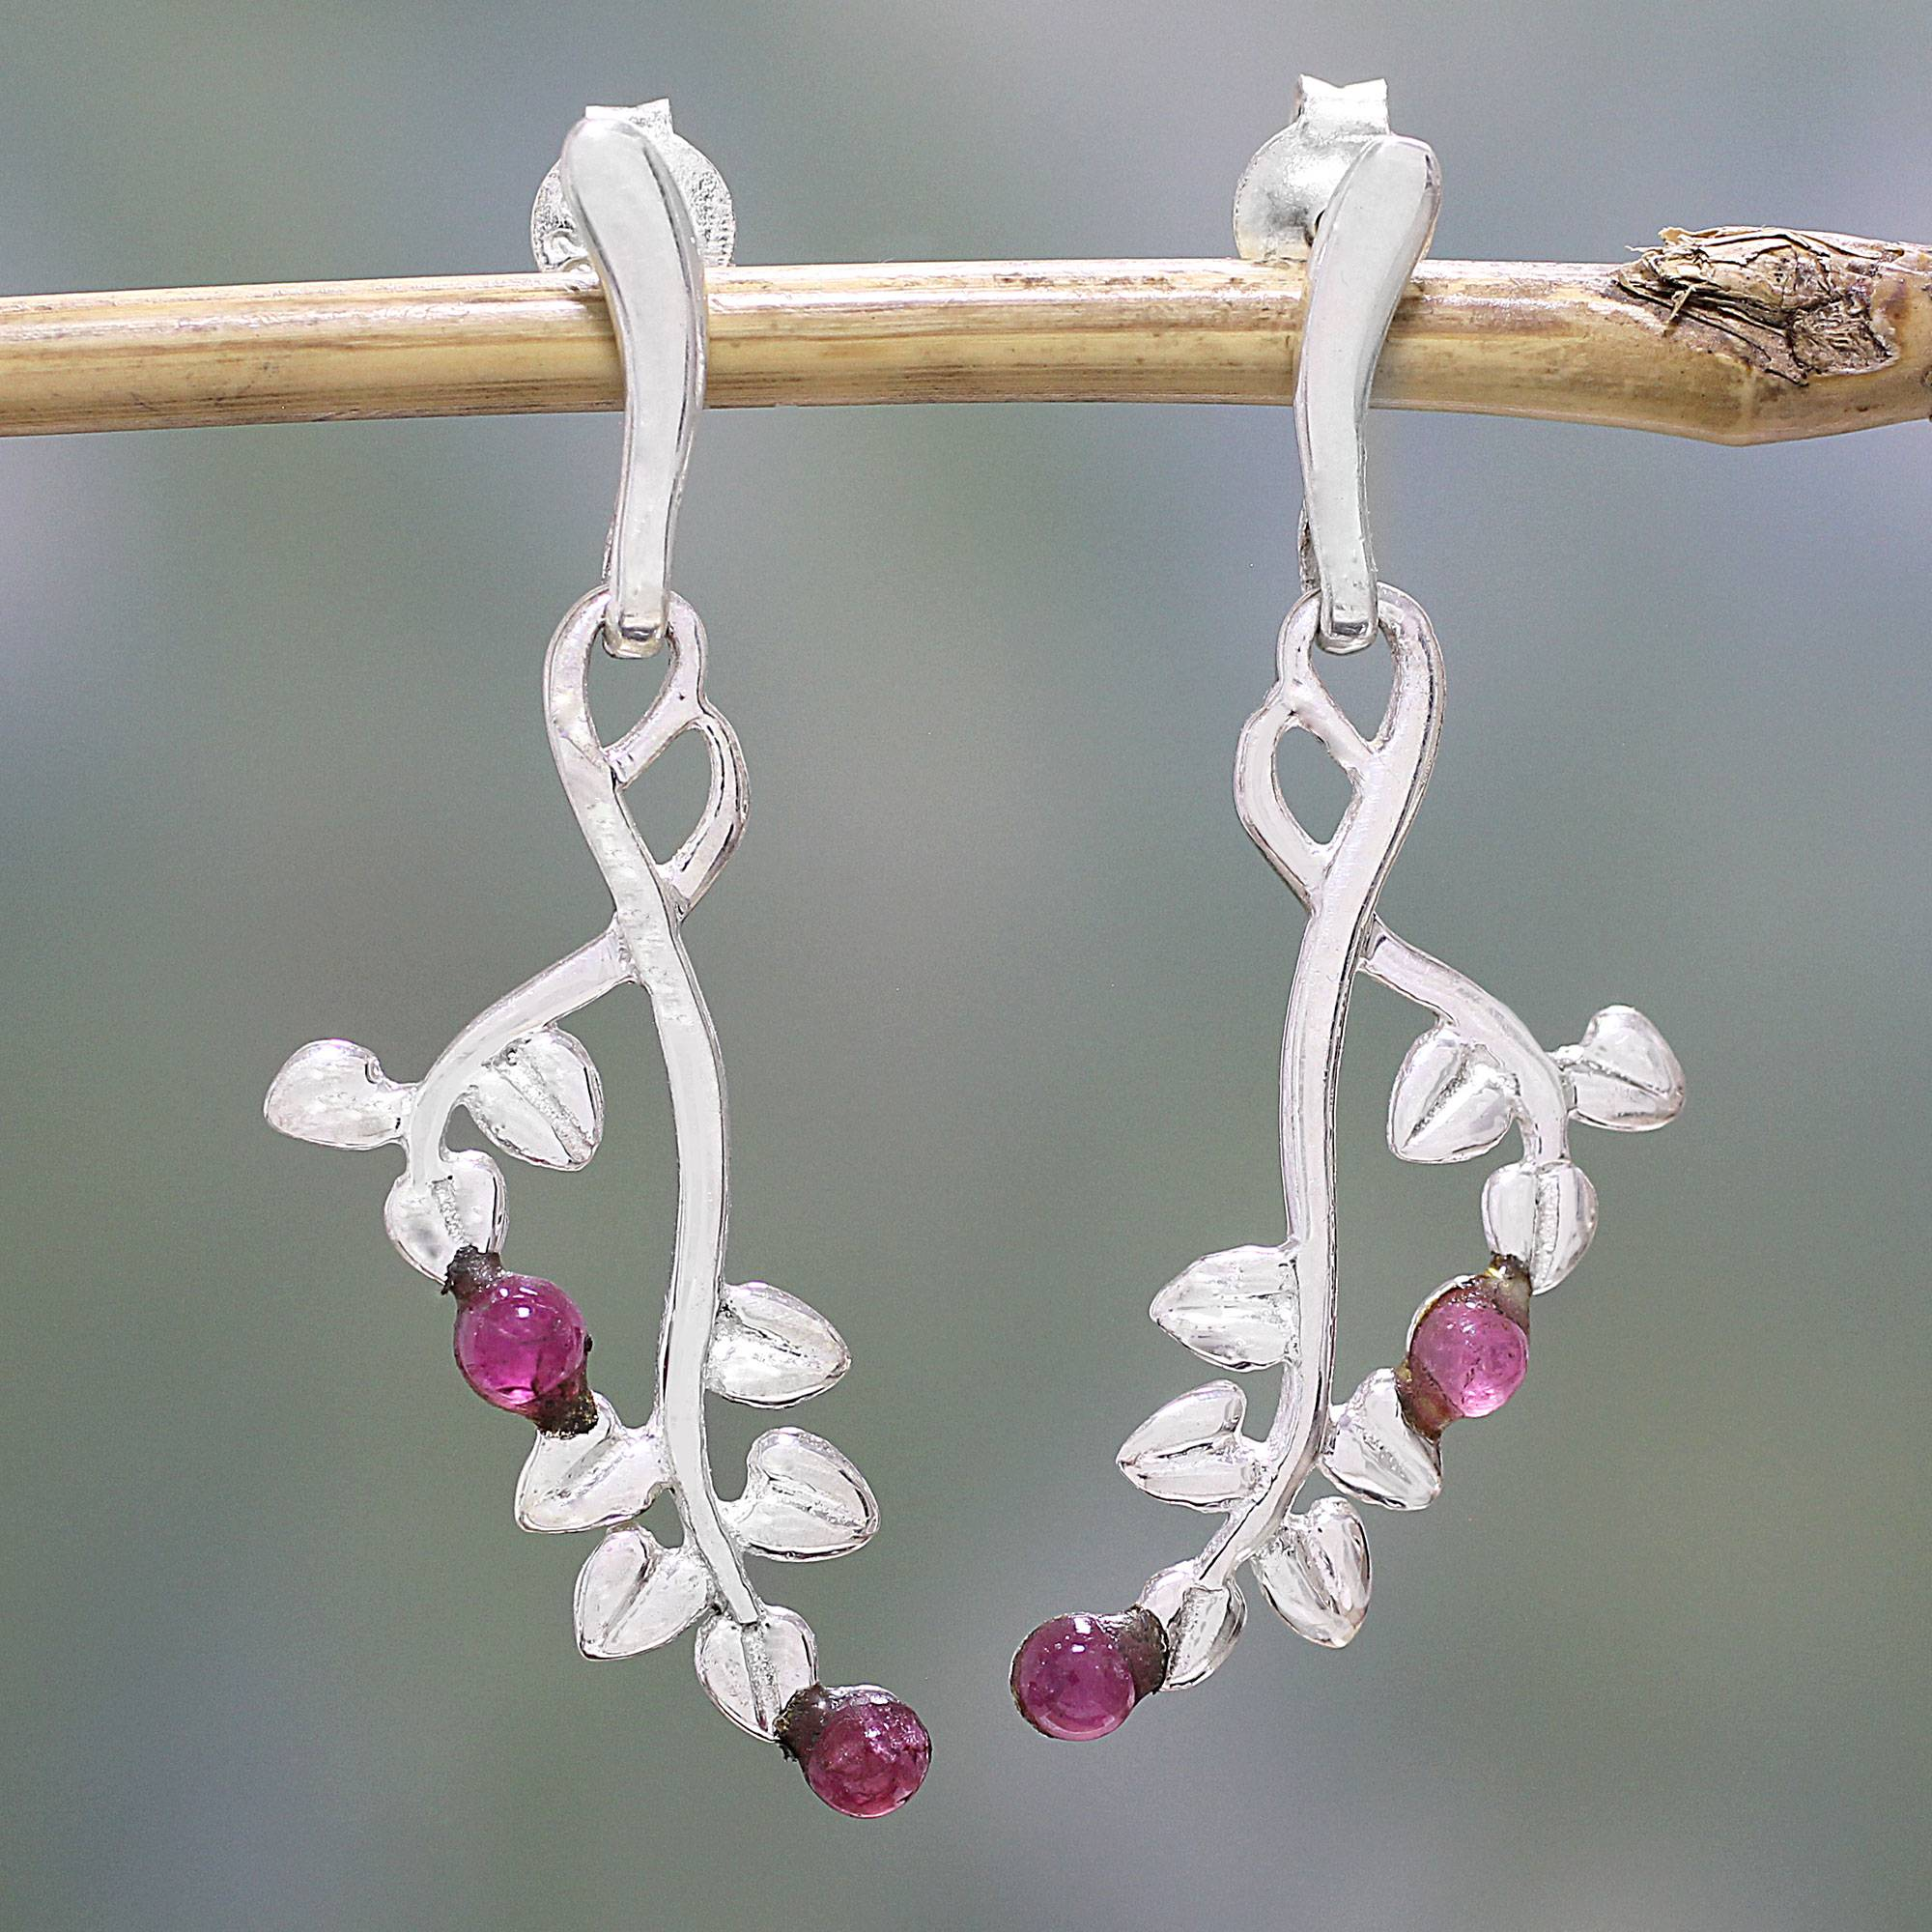 Pink Cherries Tourmaline and Sterling Silver Leaf Earrings from India Tourmaline, The Unknown October Birthstone